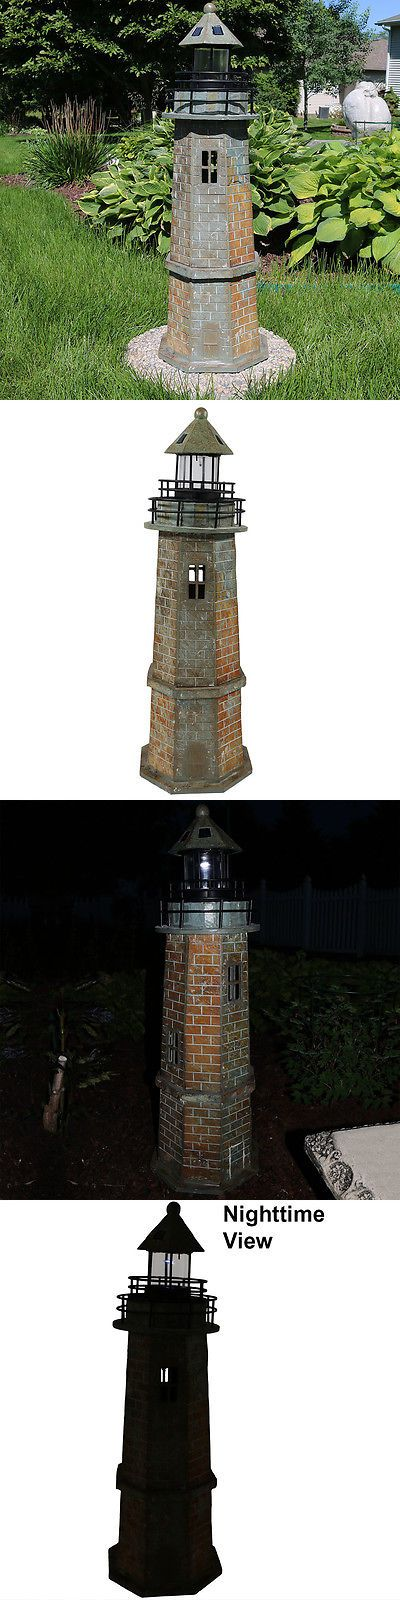 Other Outdoor Lighting 20509: Sunnydaze Outdoor Solar Led Lighthouse Patio Deck Yard Landscape Nautical Decor -> BUY IT NOW ONLY: $279 on eBay!